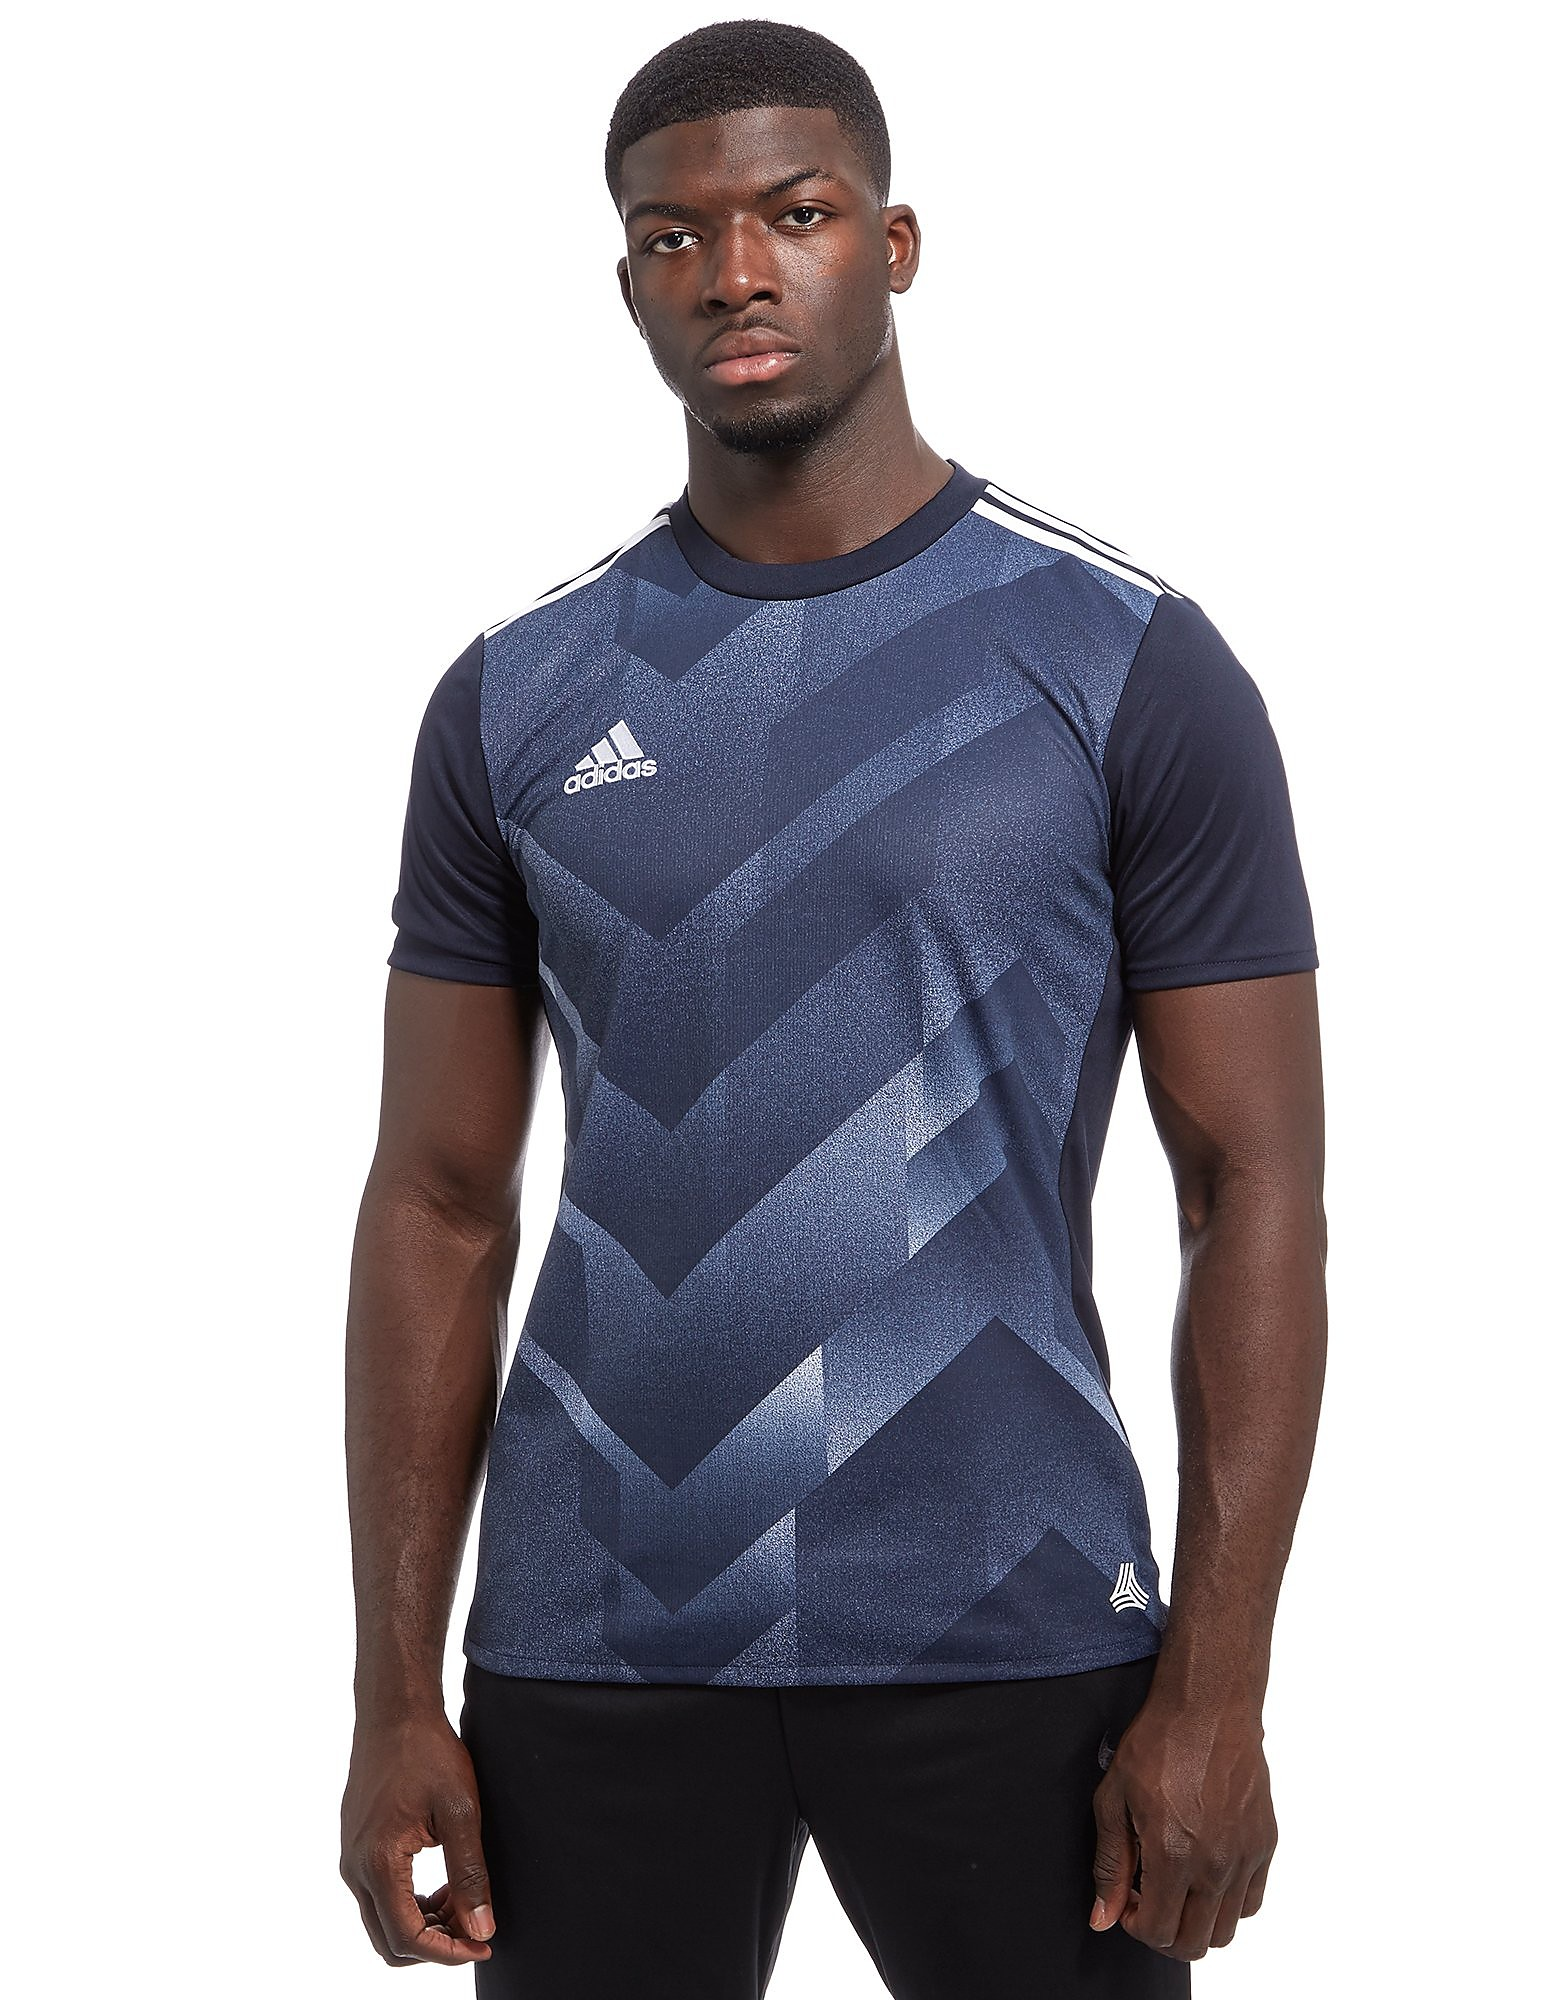 adidas Tango Cage Graphic T-Shirt